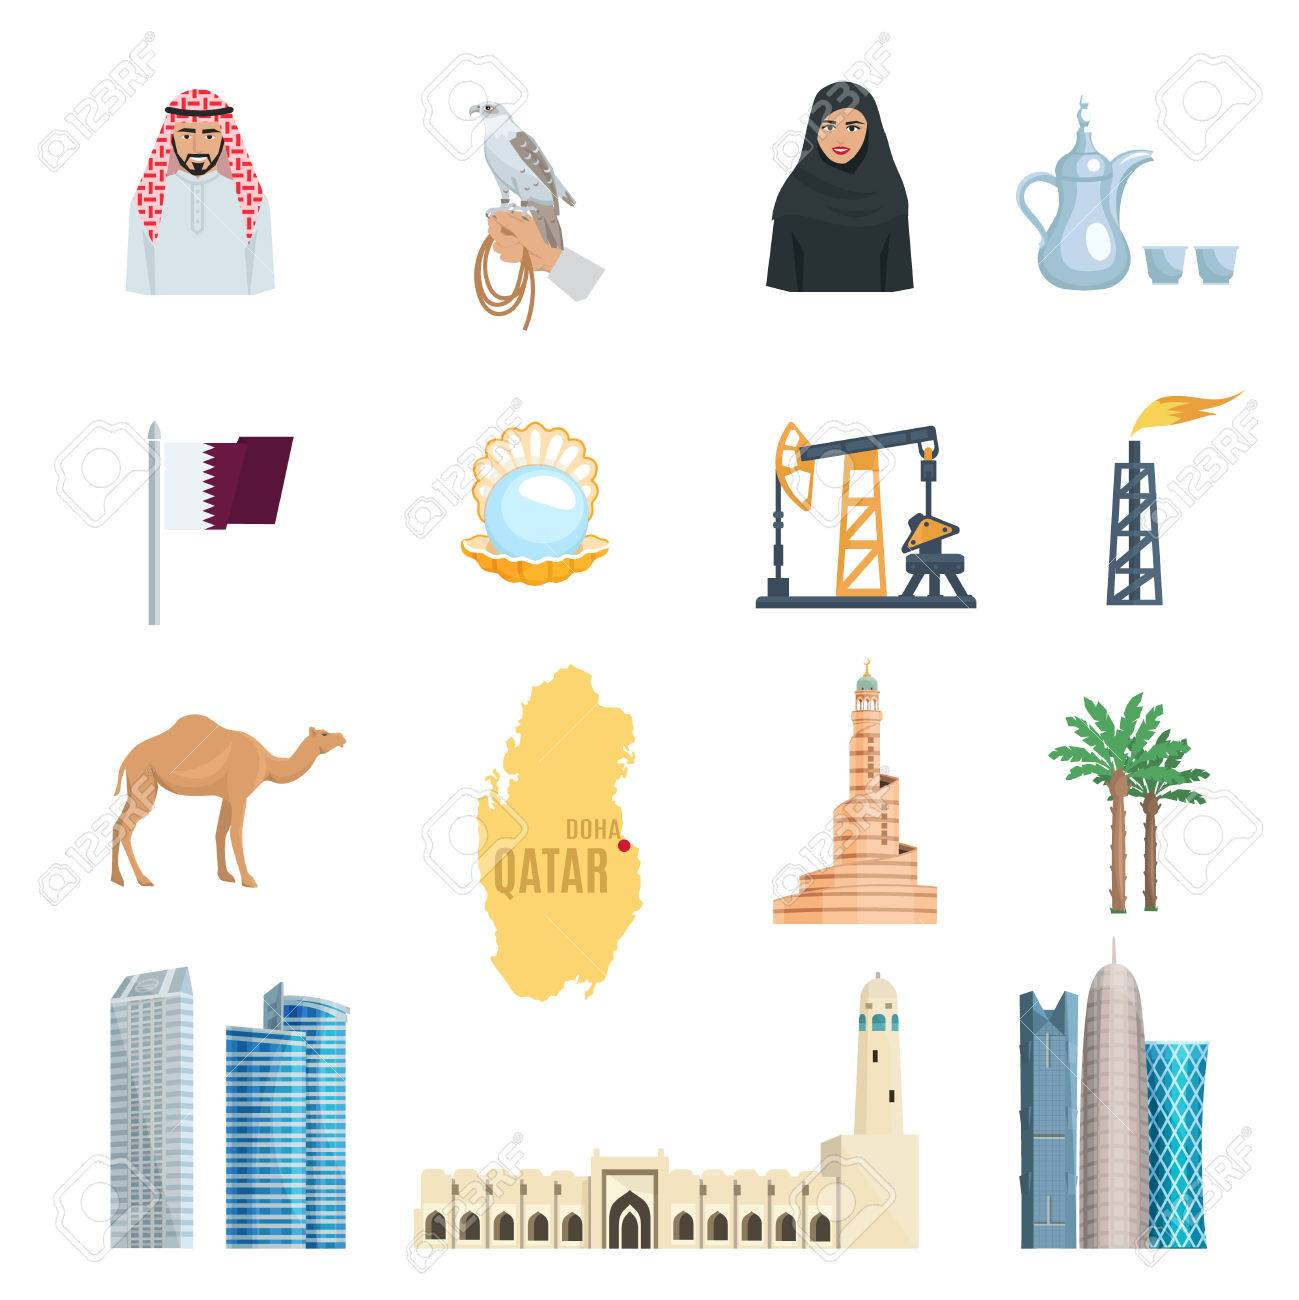 Qatar flat icons set with oil natural gas mosques skyscrapers qatar flat icons set with oil natural gas mosques skyscrapers and symbols of culture isolated vector biocorpaavc